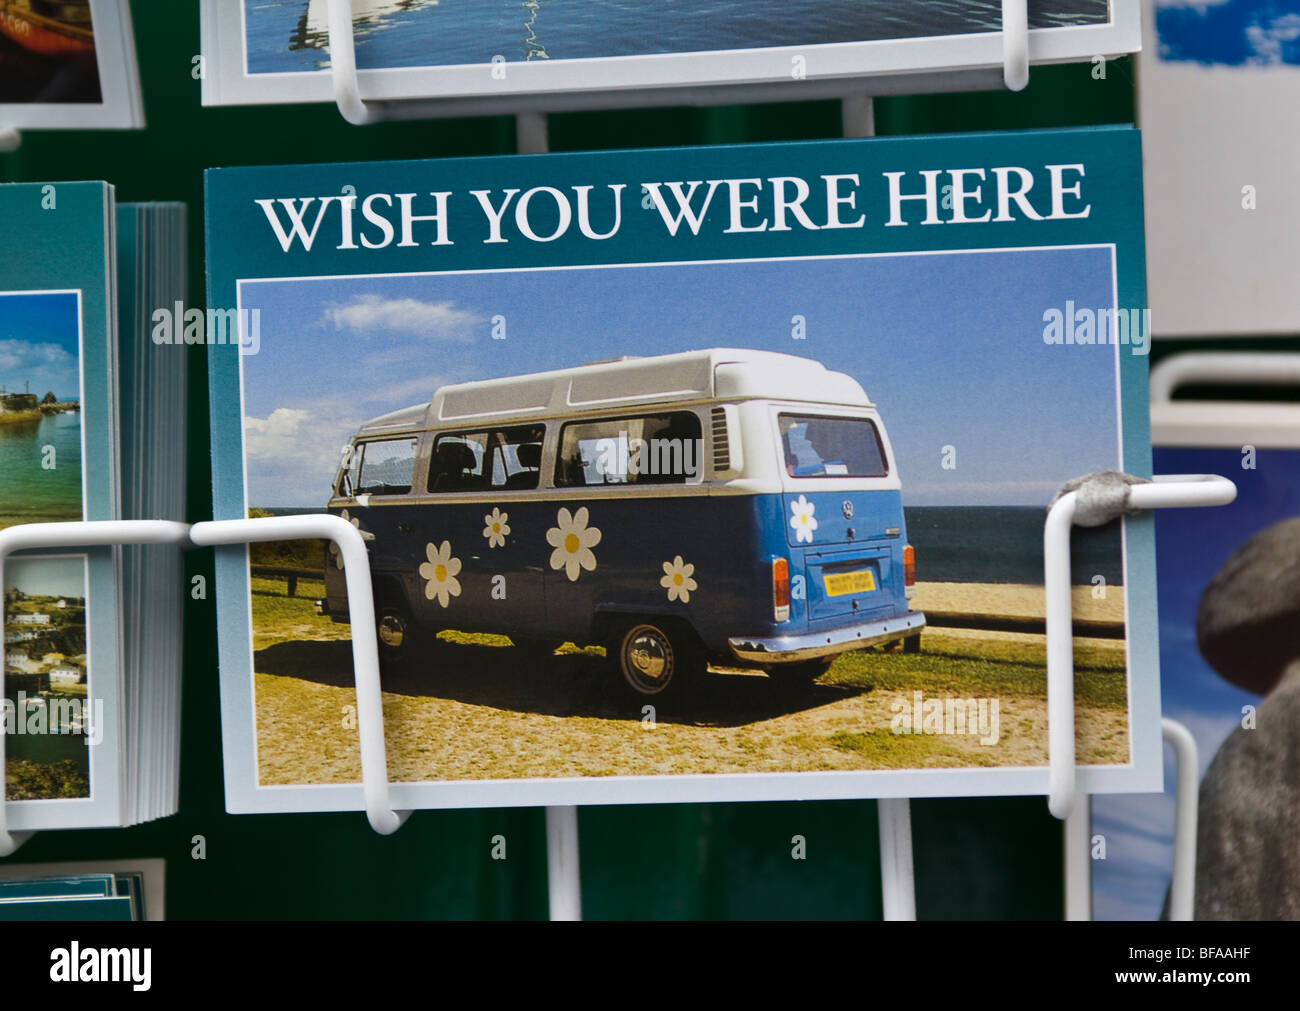 Wish You Were Here post card Photo Stock